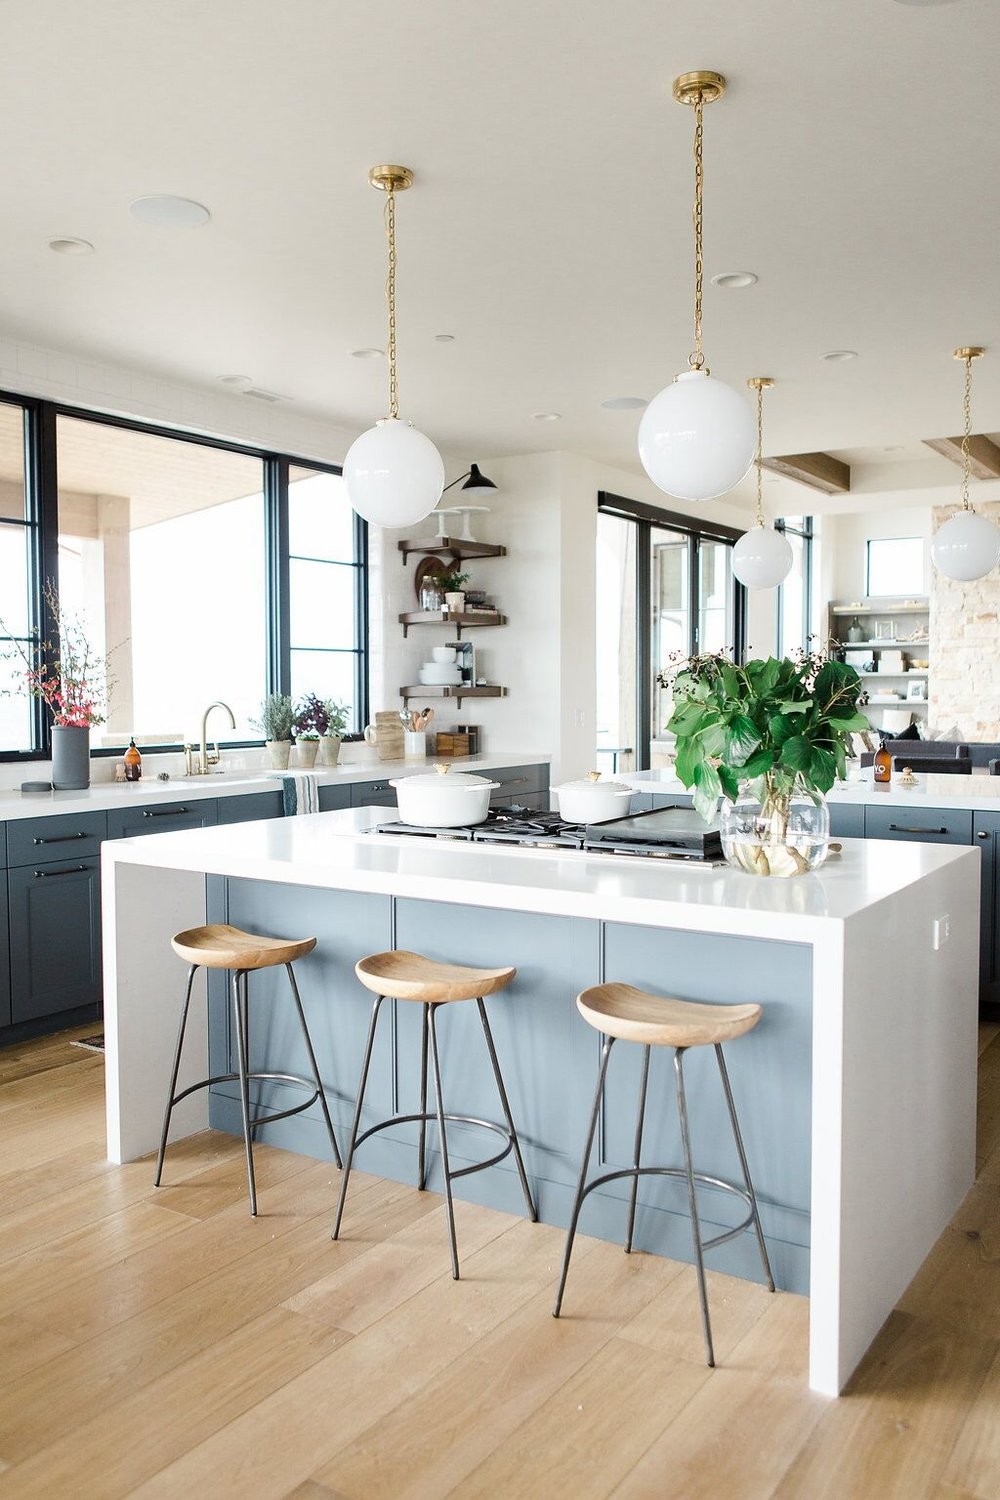 Modern kitchen with open shelves, natural wood barstools, blue cabinets with white waterfall edged countertops